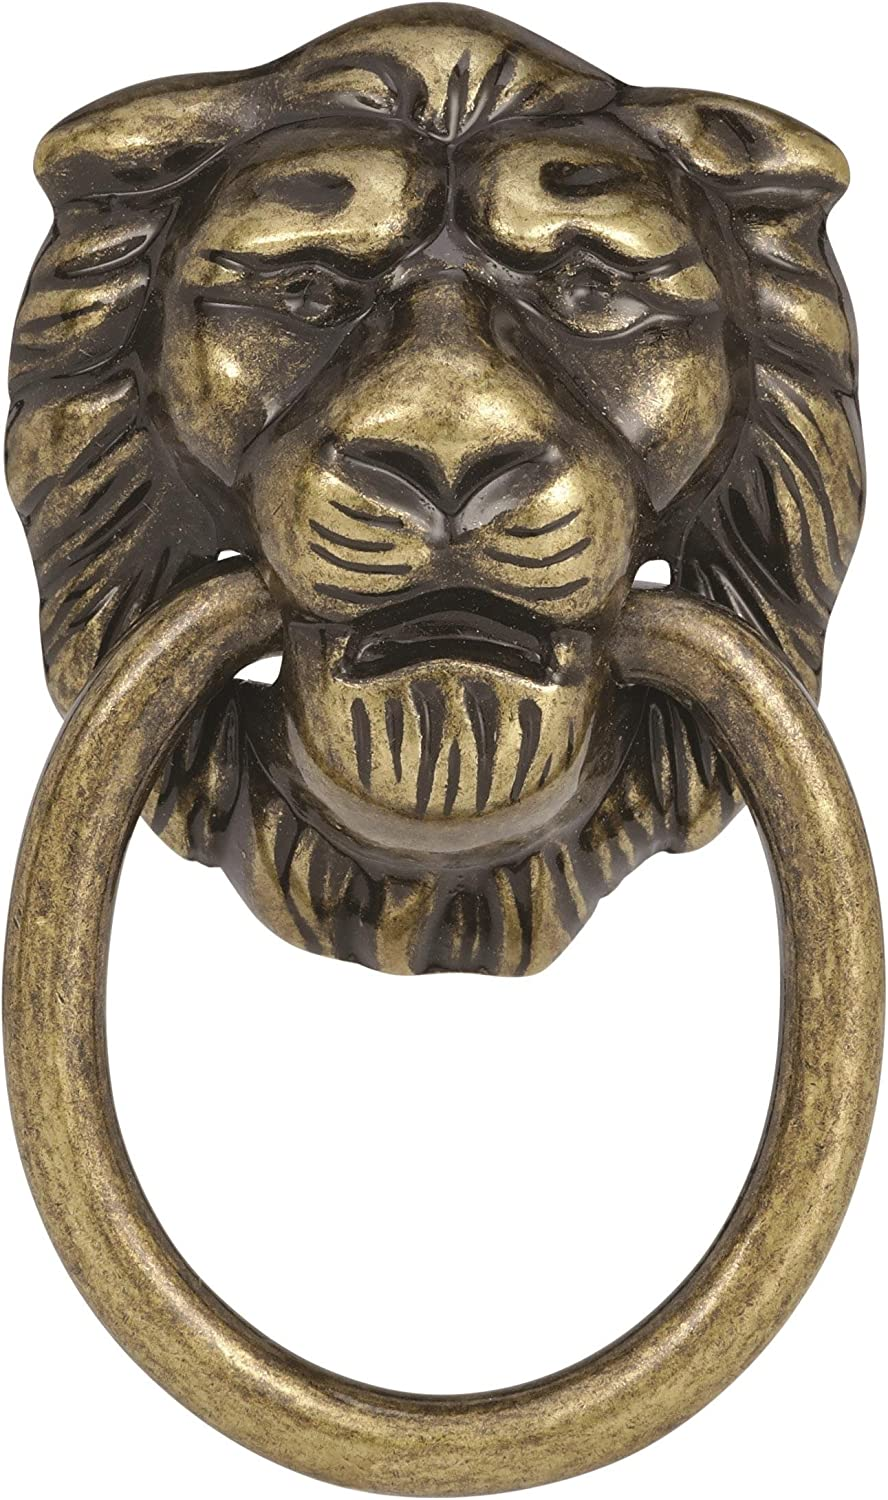 8 pieces Bought new in 1964 Drawer Pull VINTAGE Lions Head Brass finish 4 sets